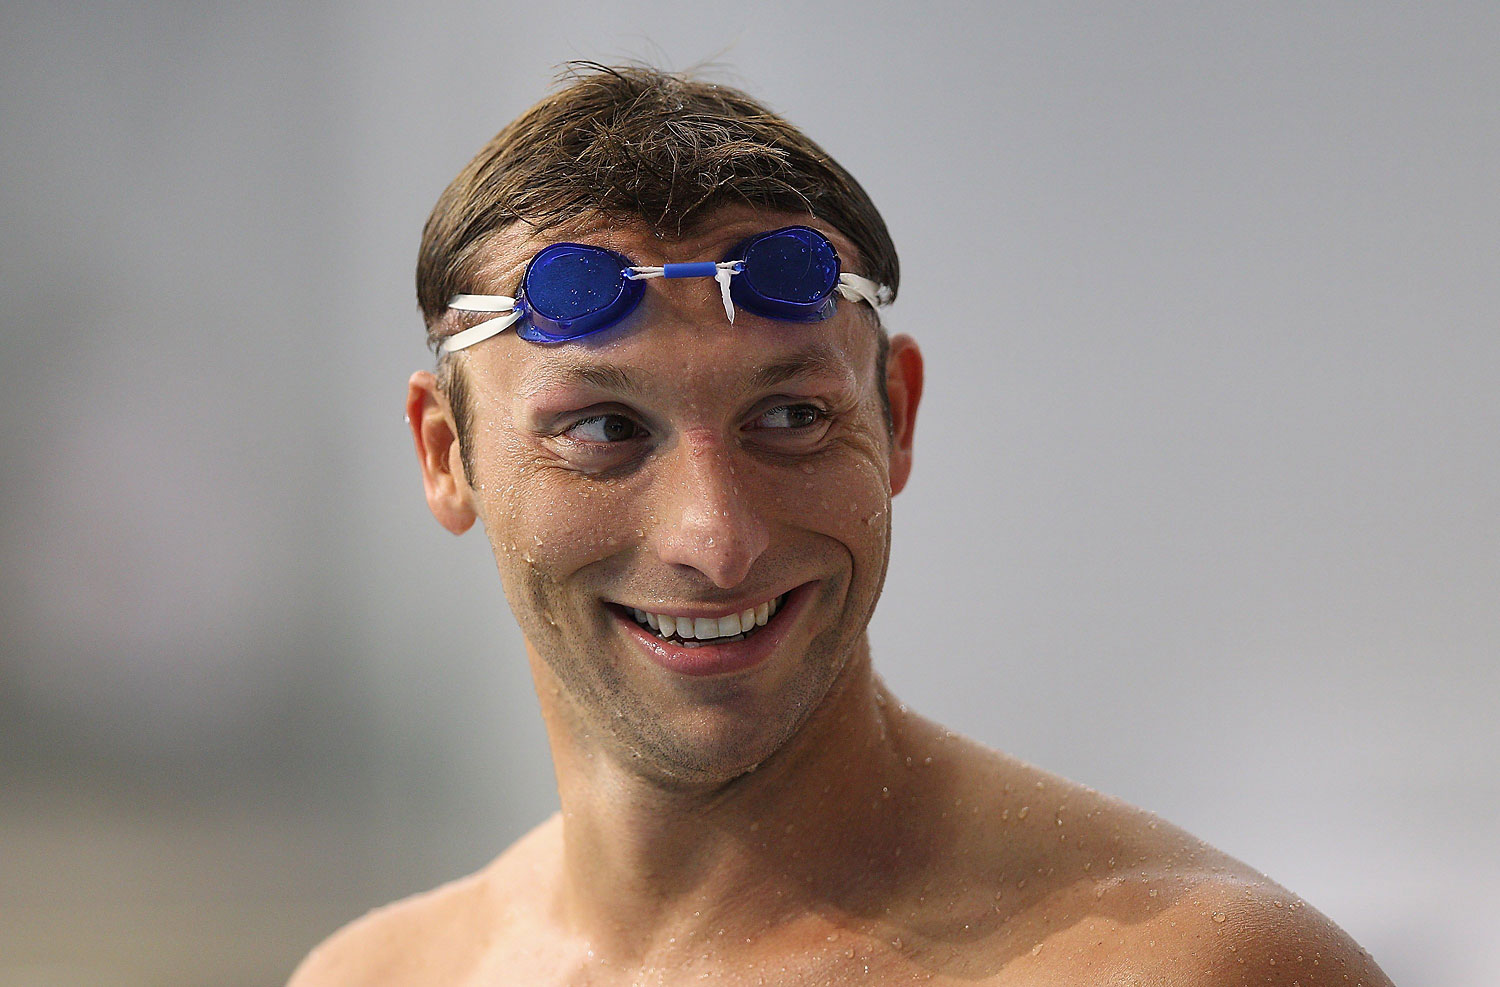 Olympic Swimmer Ian Thorpe